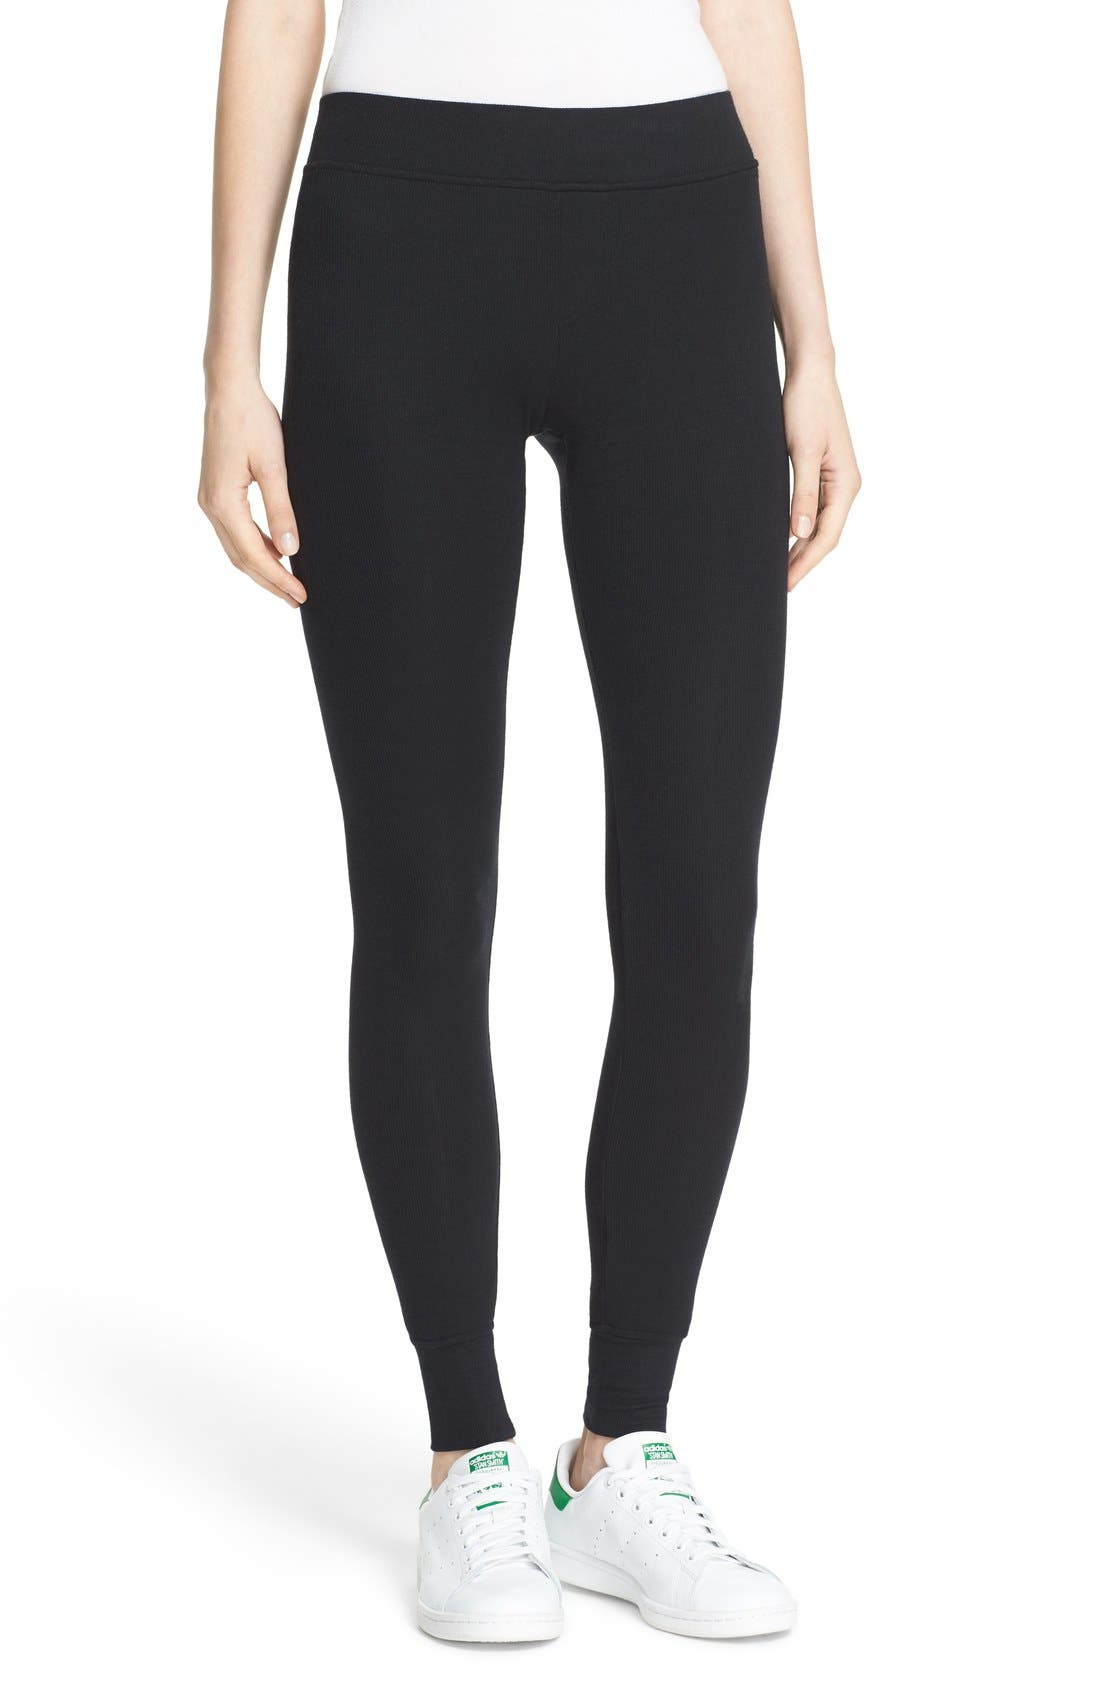 Rib Knit Yoga Leggings,                         Main,                         color, Black